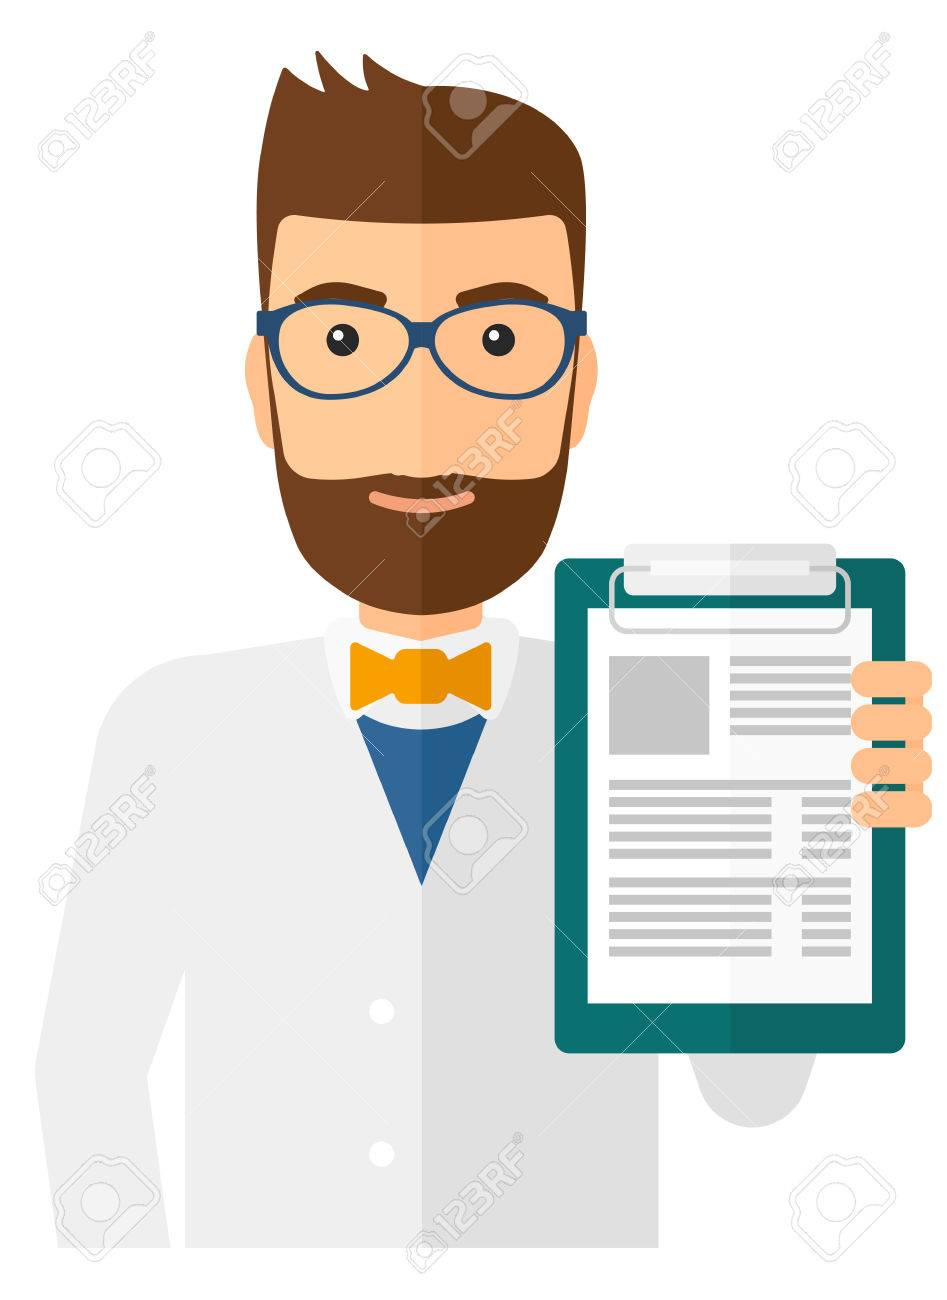 A doctor holding medical notepad vector flat design illustration isolated on white background. Vertical layout. - 50290958